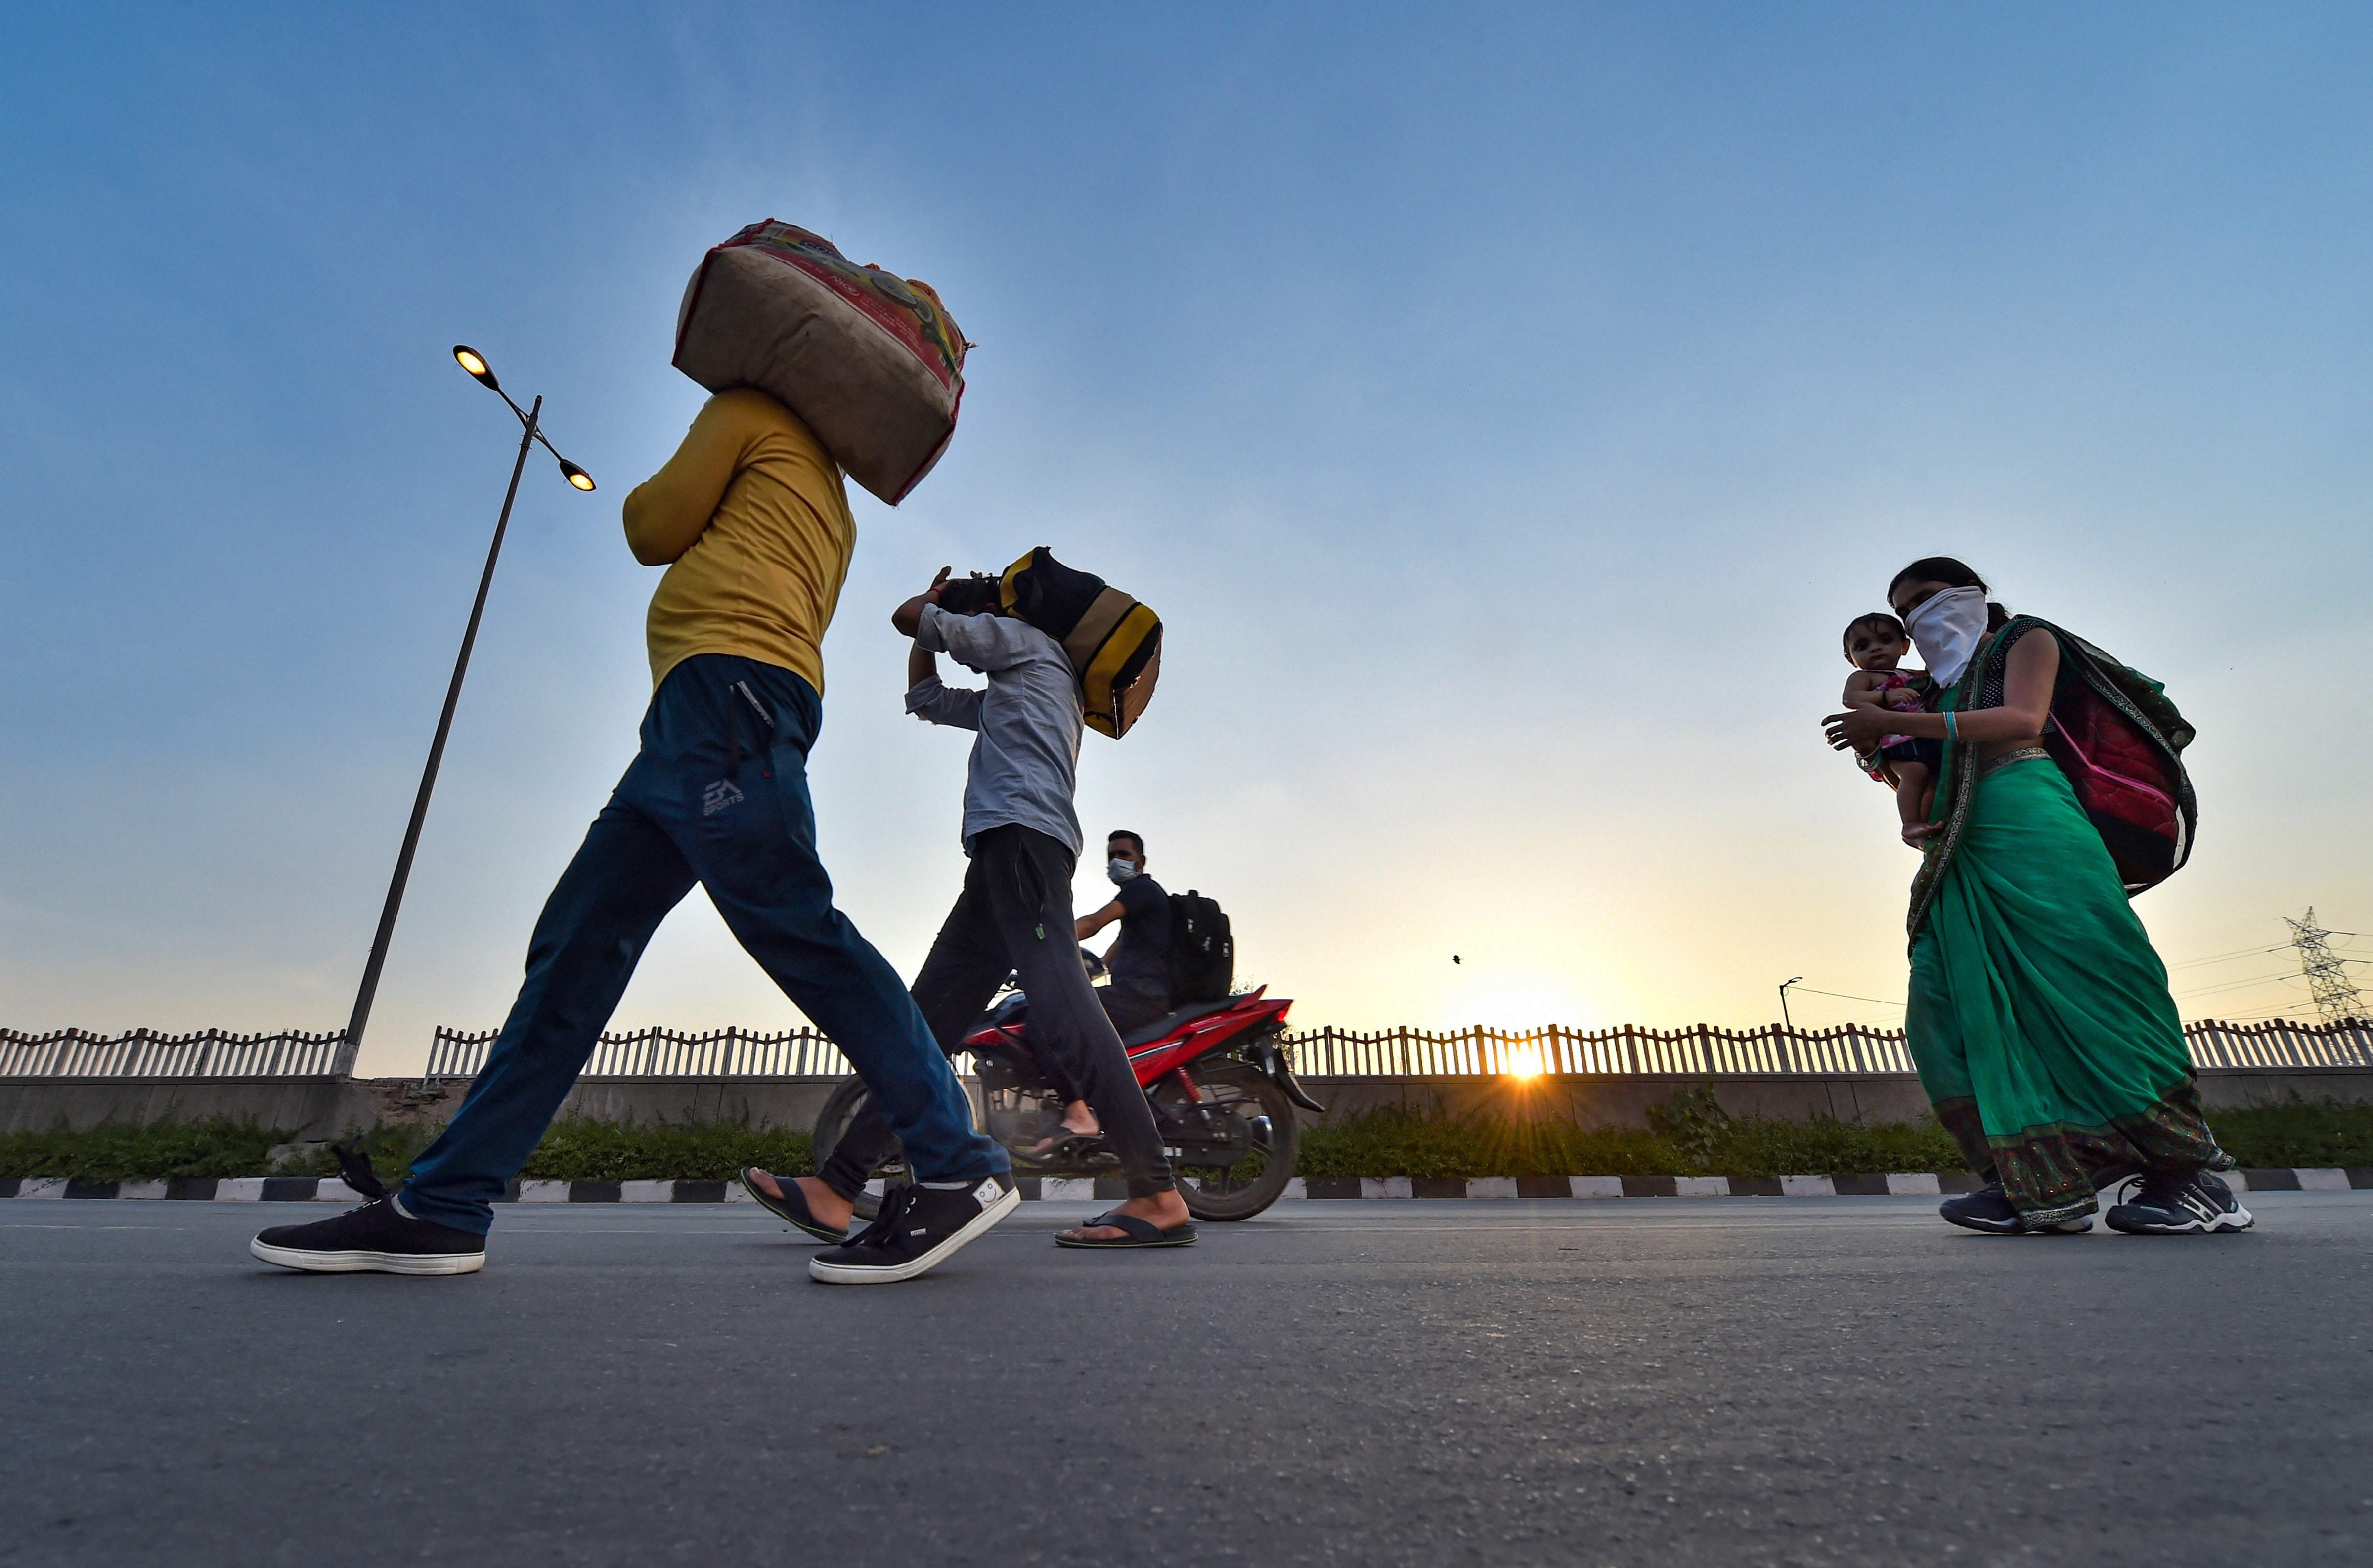 Migrant workers along with their family members walk along the Delhi-UP border road during the ongoing Covid-19 nationwide lockdown, in East Delhi, Tuesday, May 5, 2020.